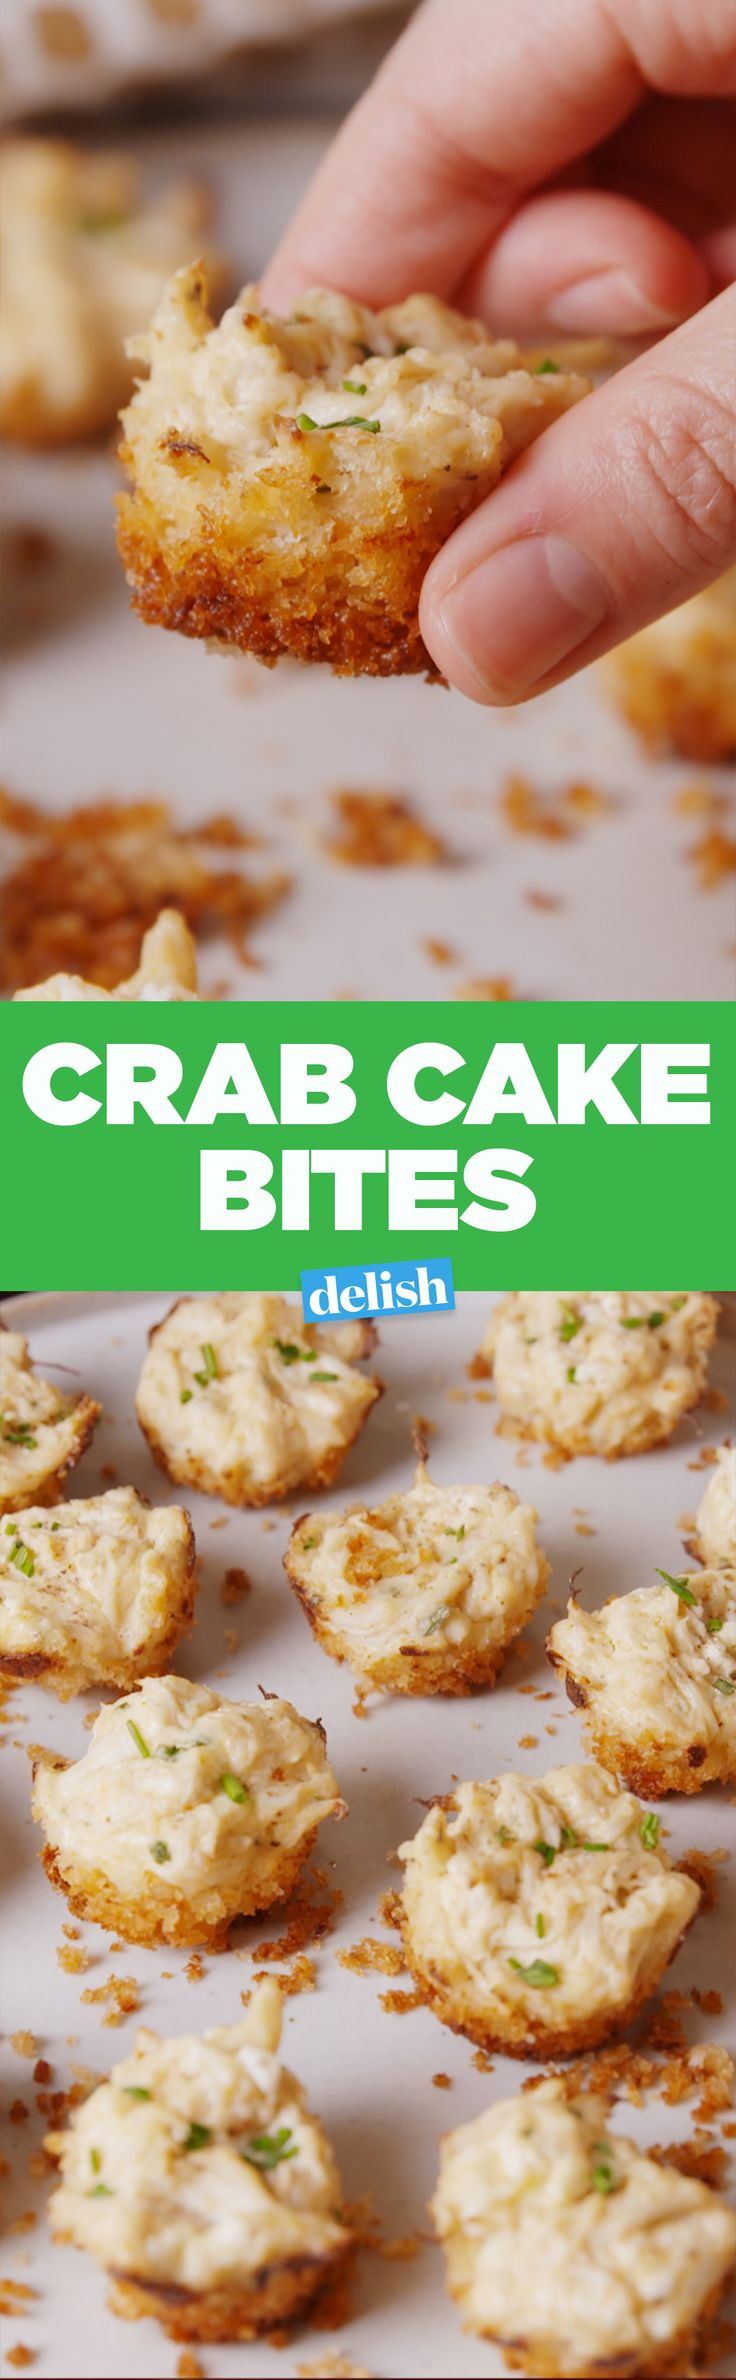 These Crab Cake Bites will be the first thing to go at your holiday party. Get the recipe on Delish.com.